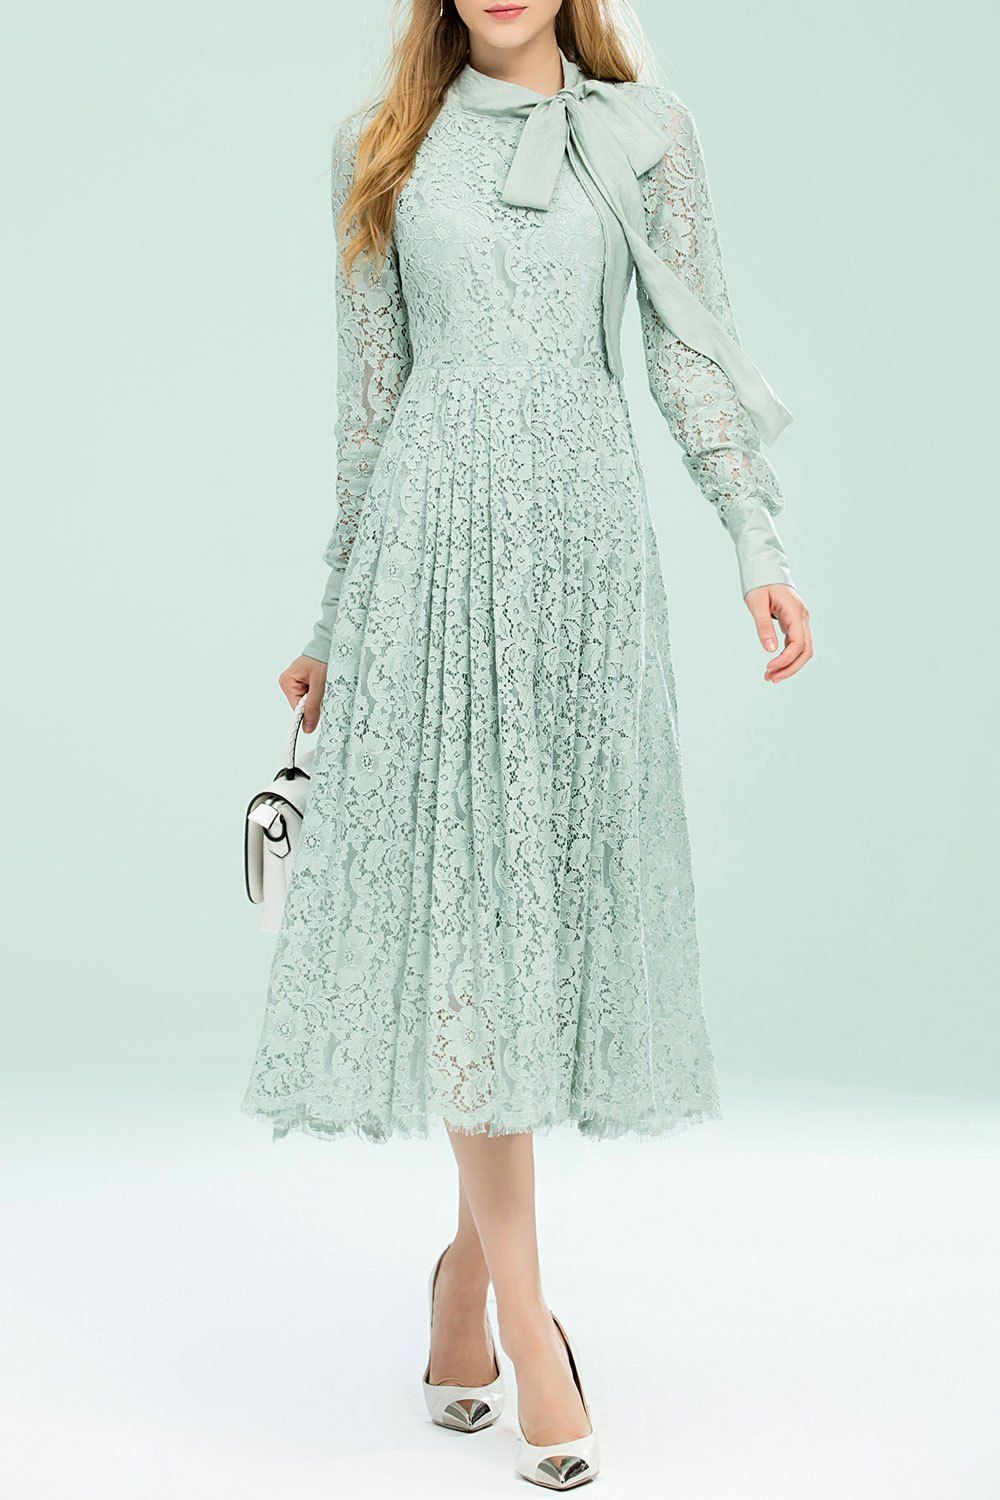 Light green lace dress  Bellywear Light Green Bow Collar Pleated Lace Dress  Midi Dresses